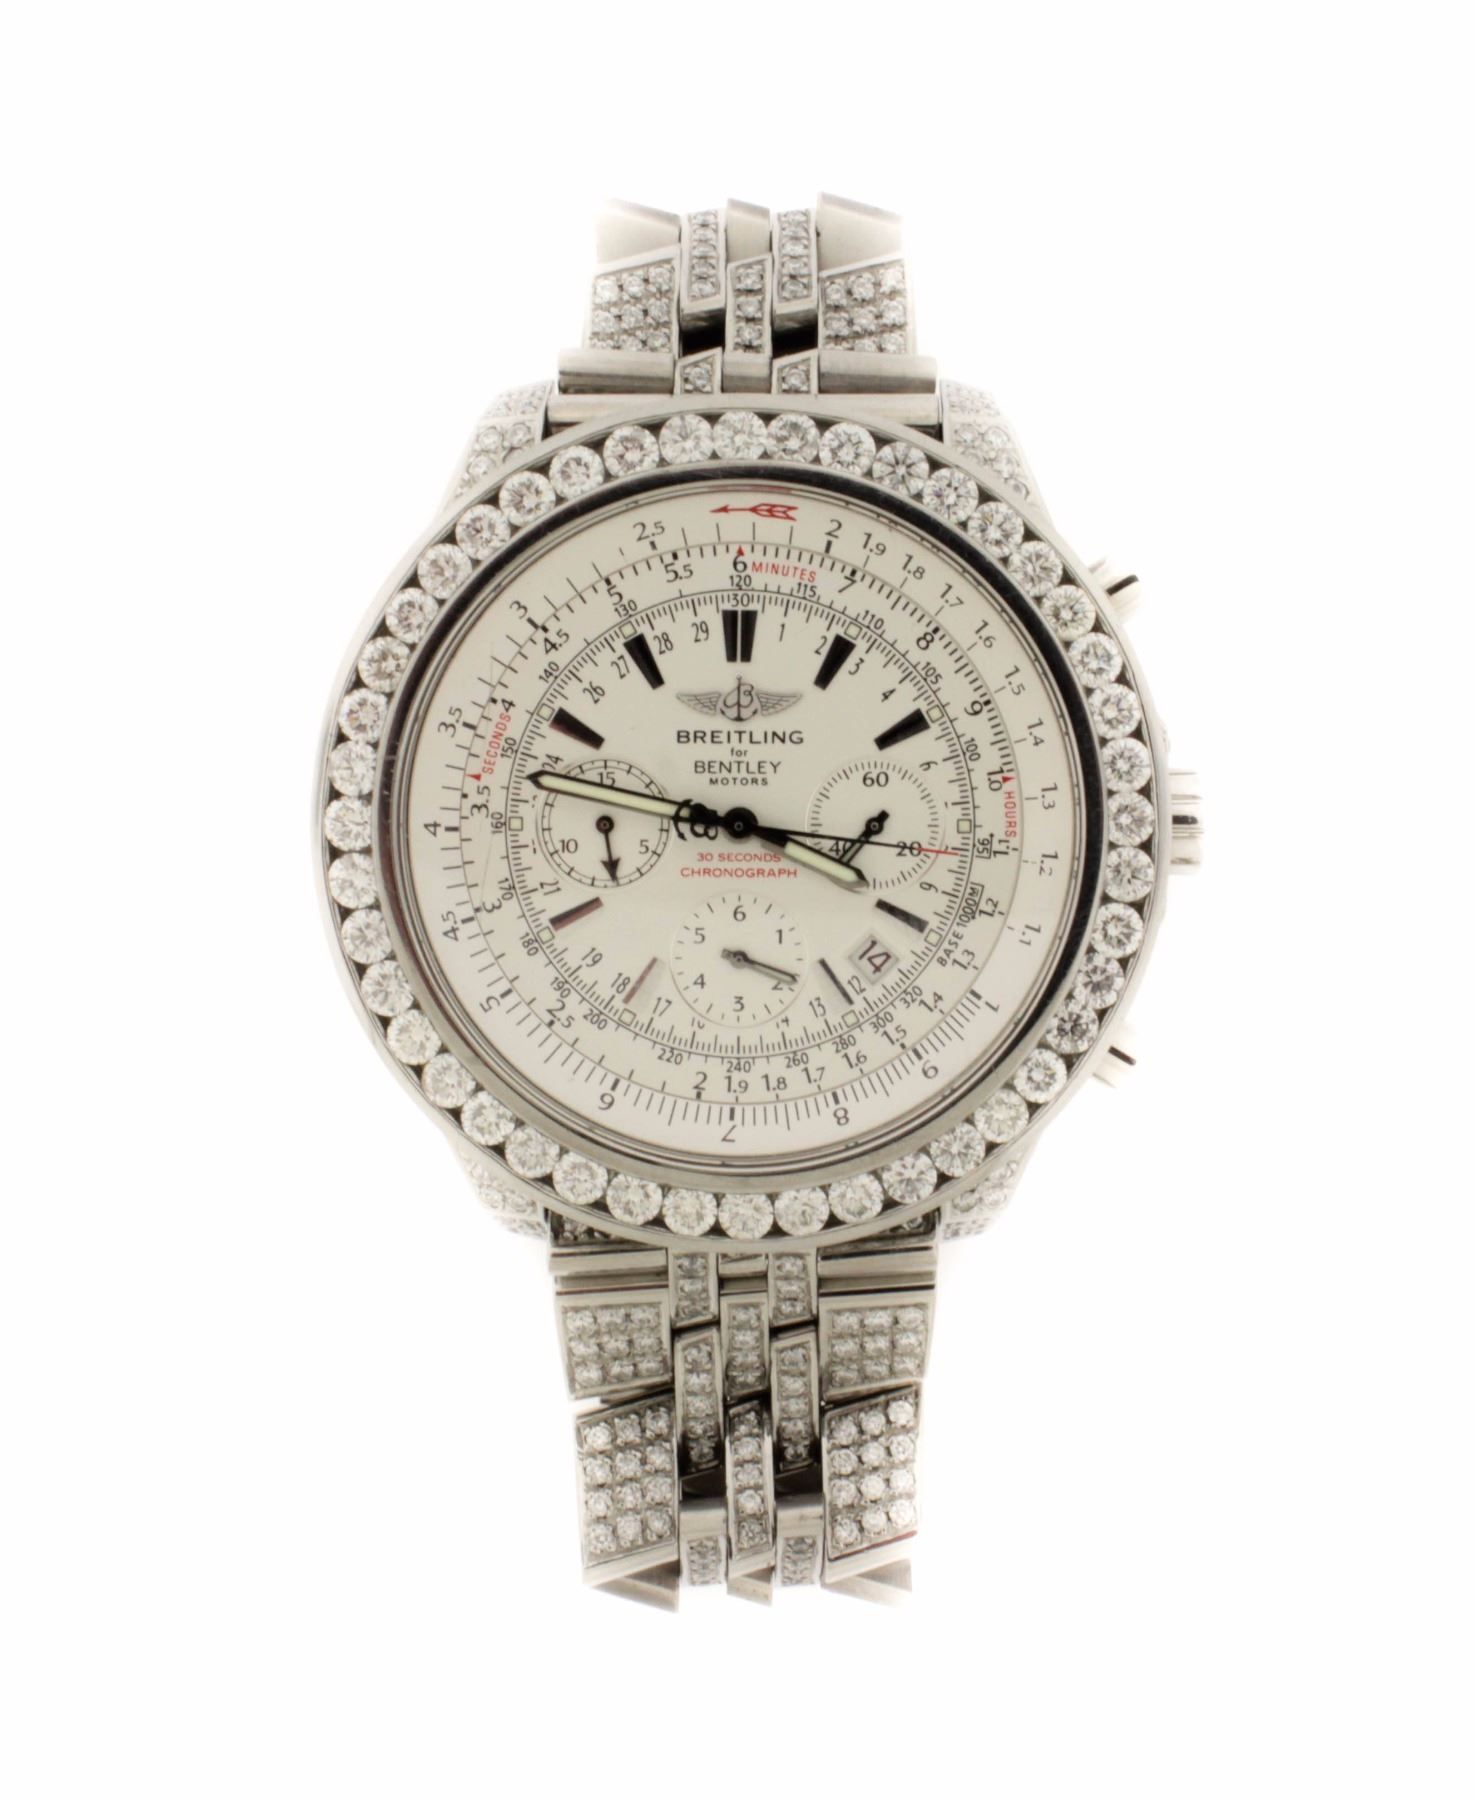 WATCH: [1] Stainless Steel Gents Breitling For Bentley